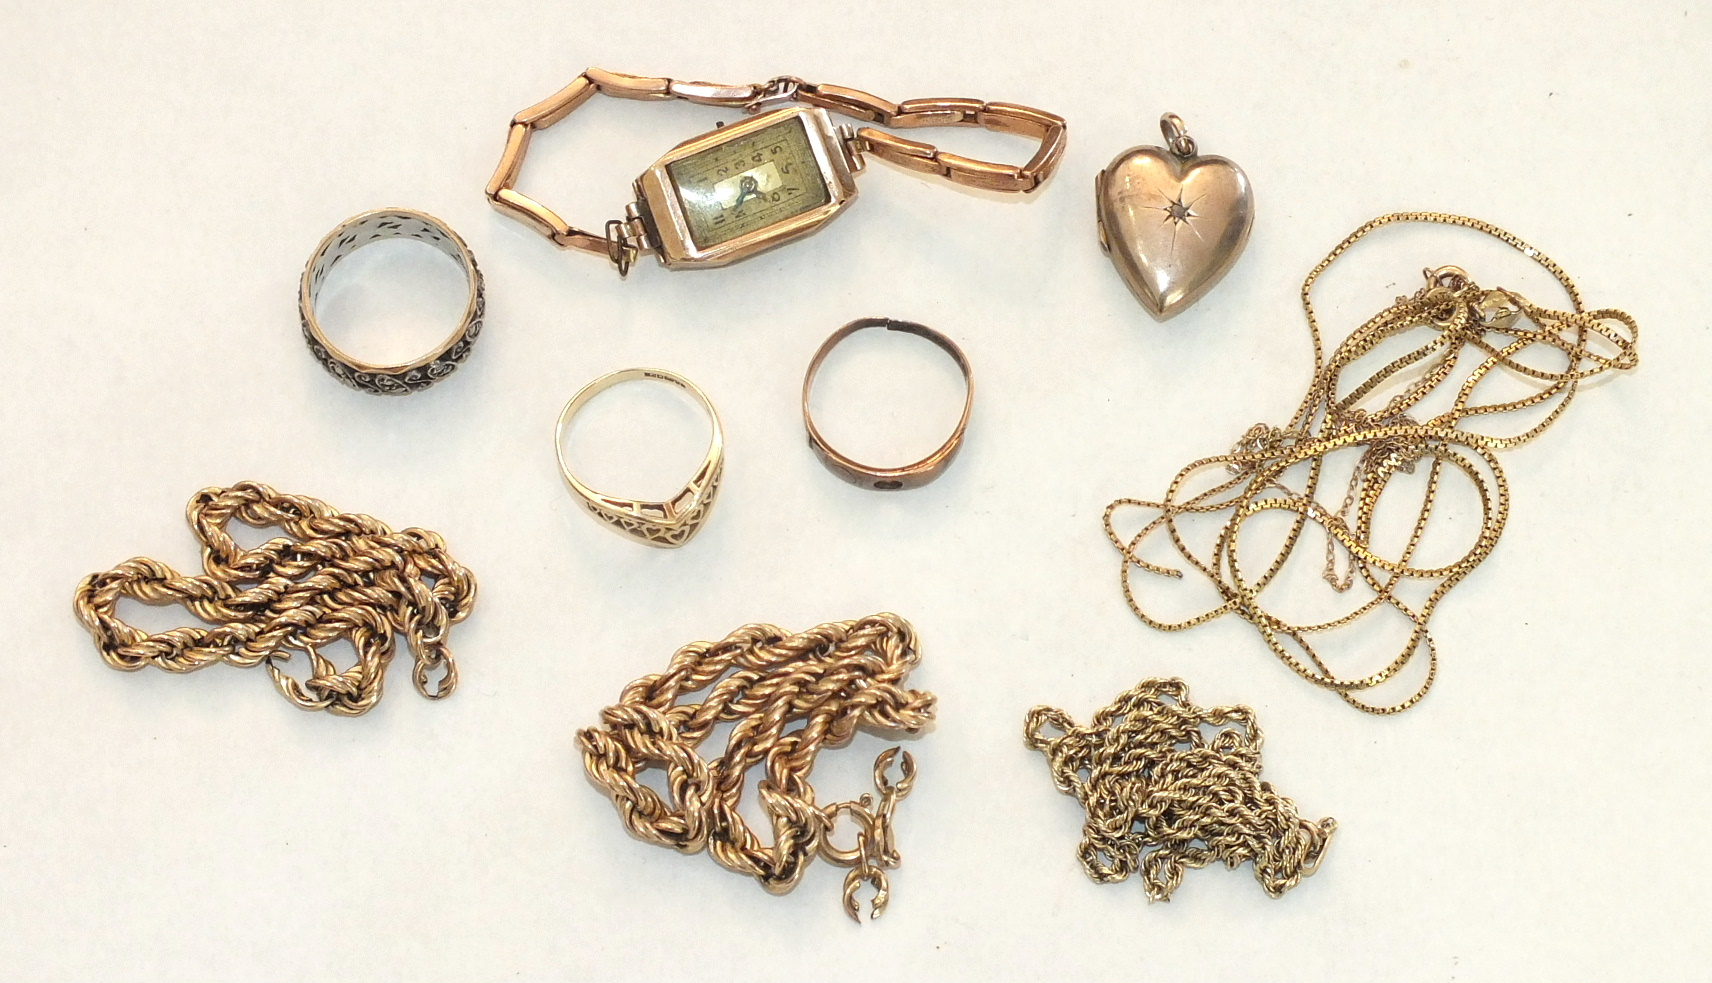 A quantity of gold chains, all a/f, and other items, gold weight approximately 23g.